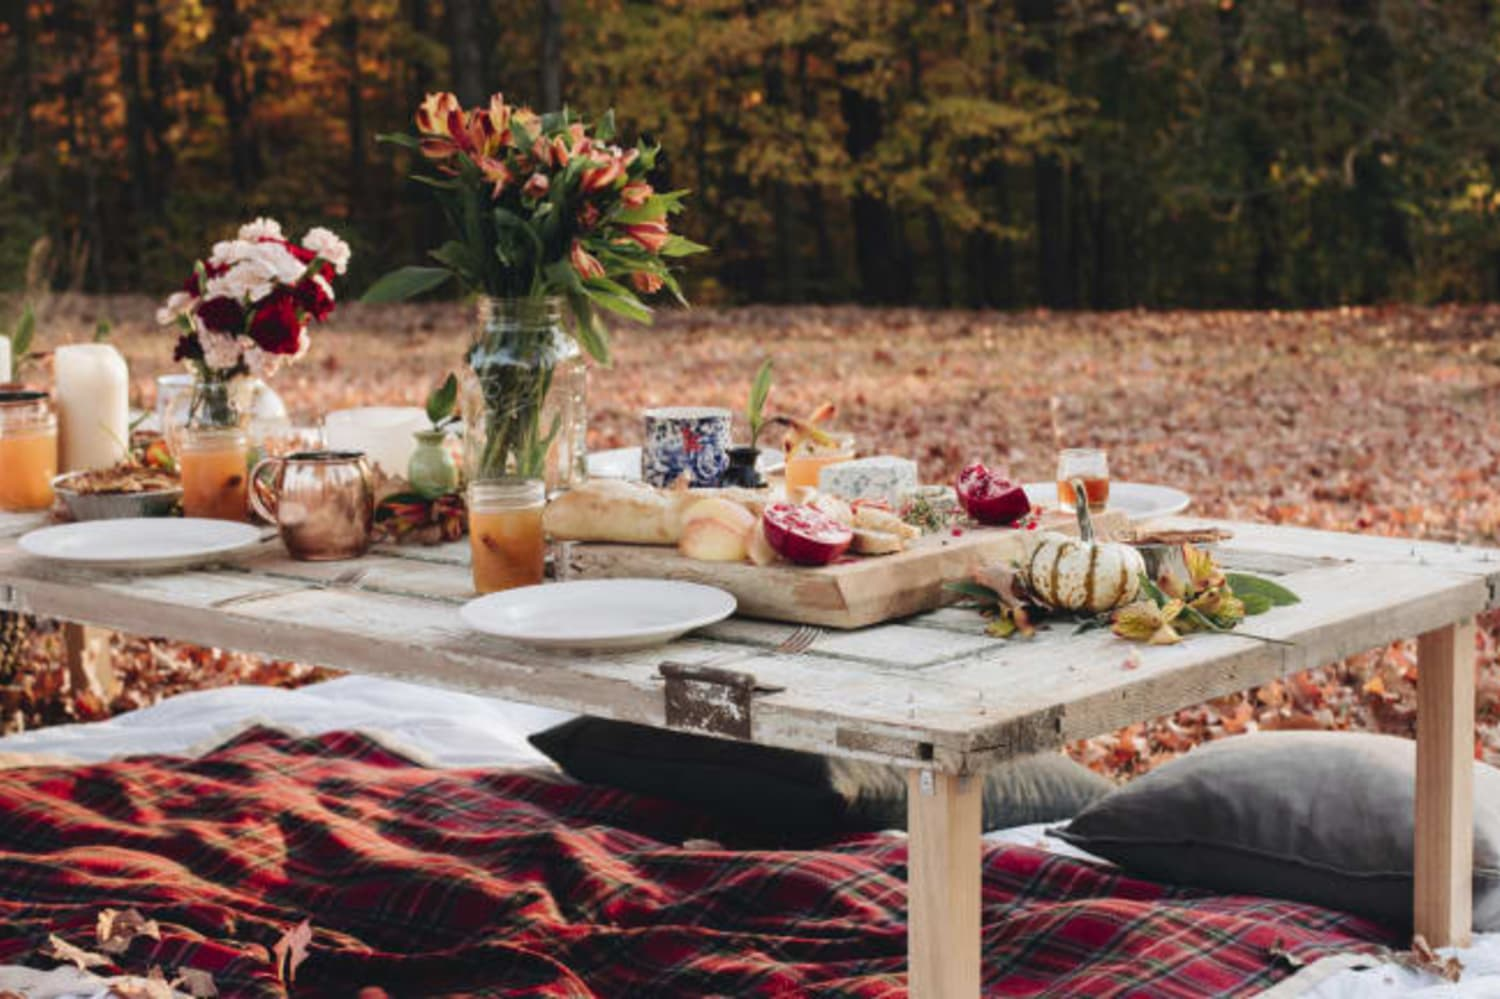 5 Ways to Have a Holiday Meal Together — Even When You're Not Actually Seated Together